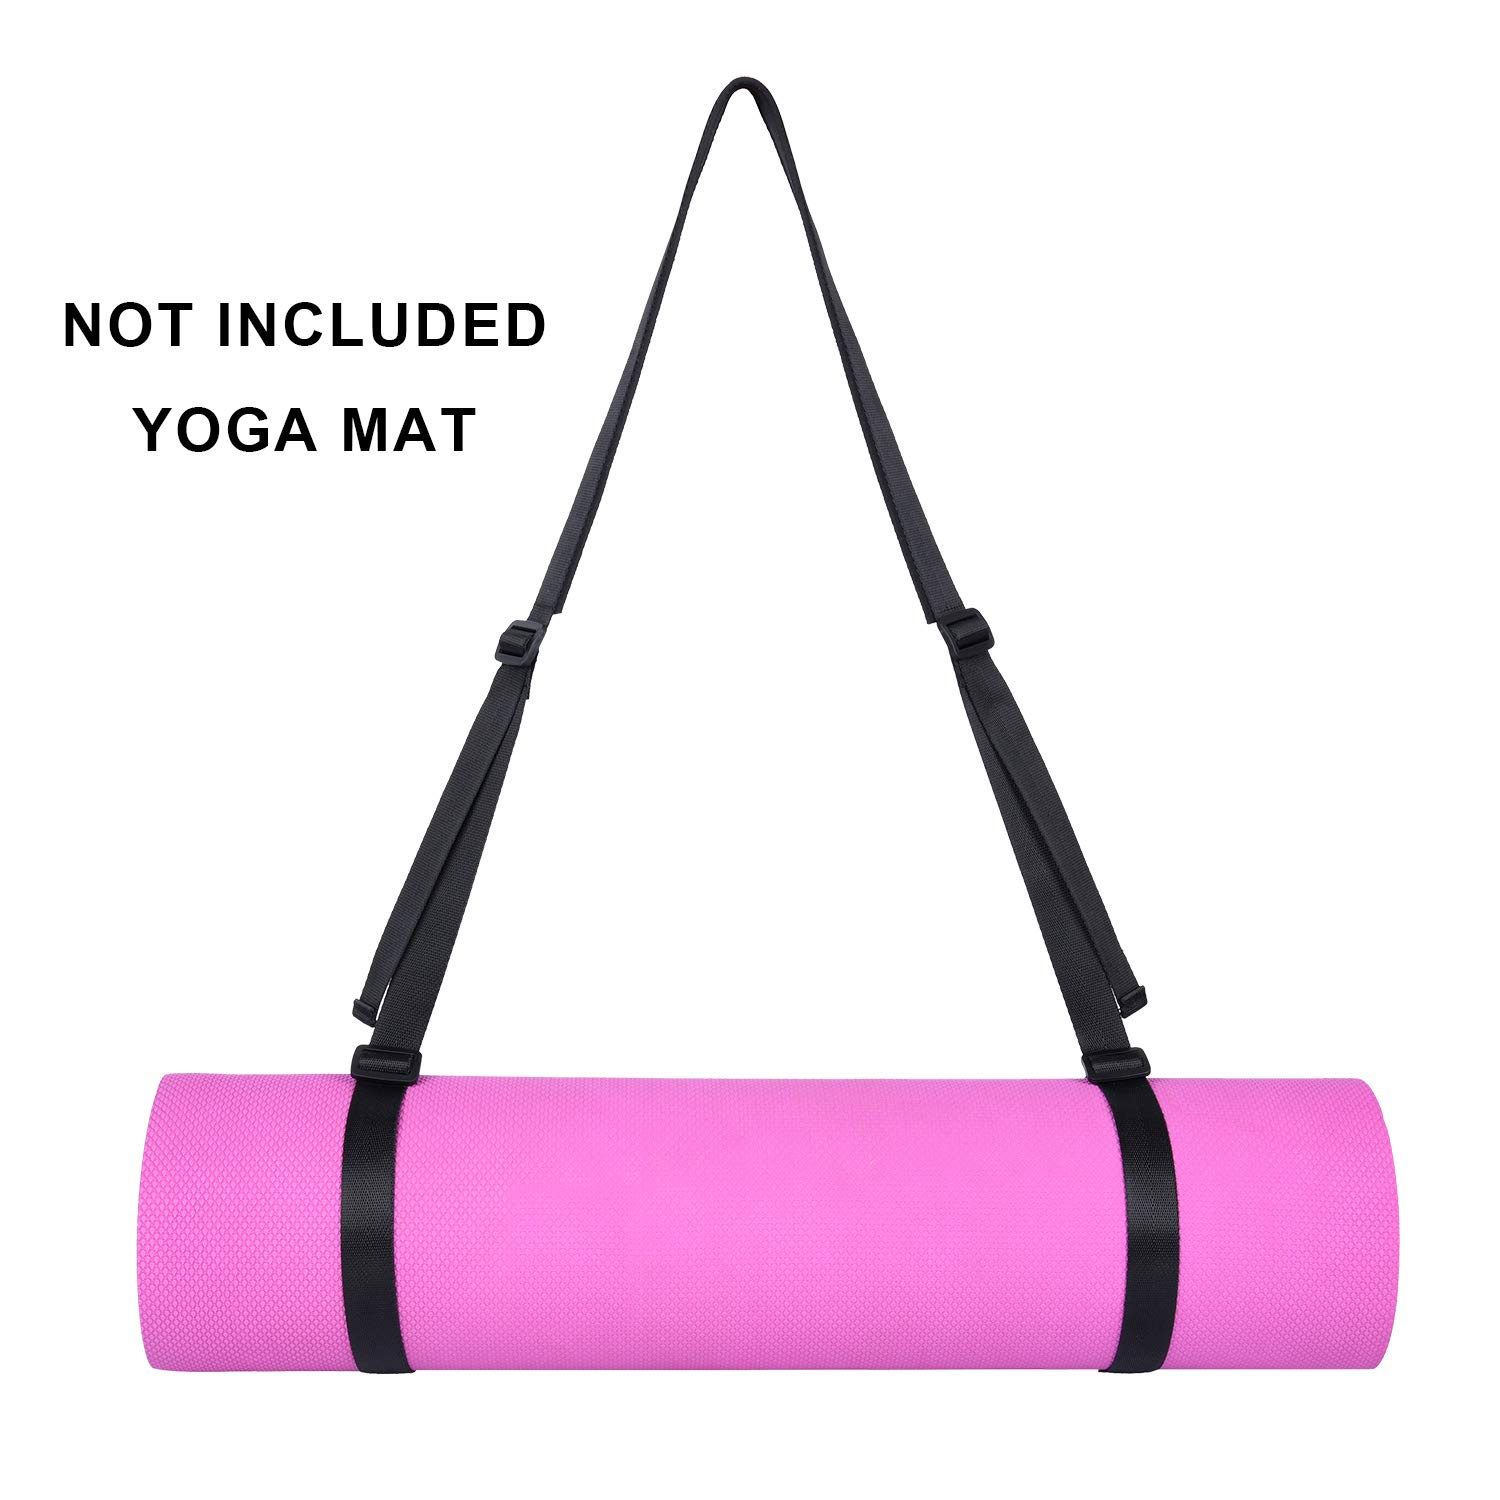 Adjustable Yoga Mat Carrying Strap Sling for all Mats 98 inches